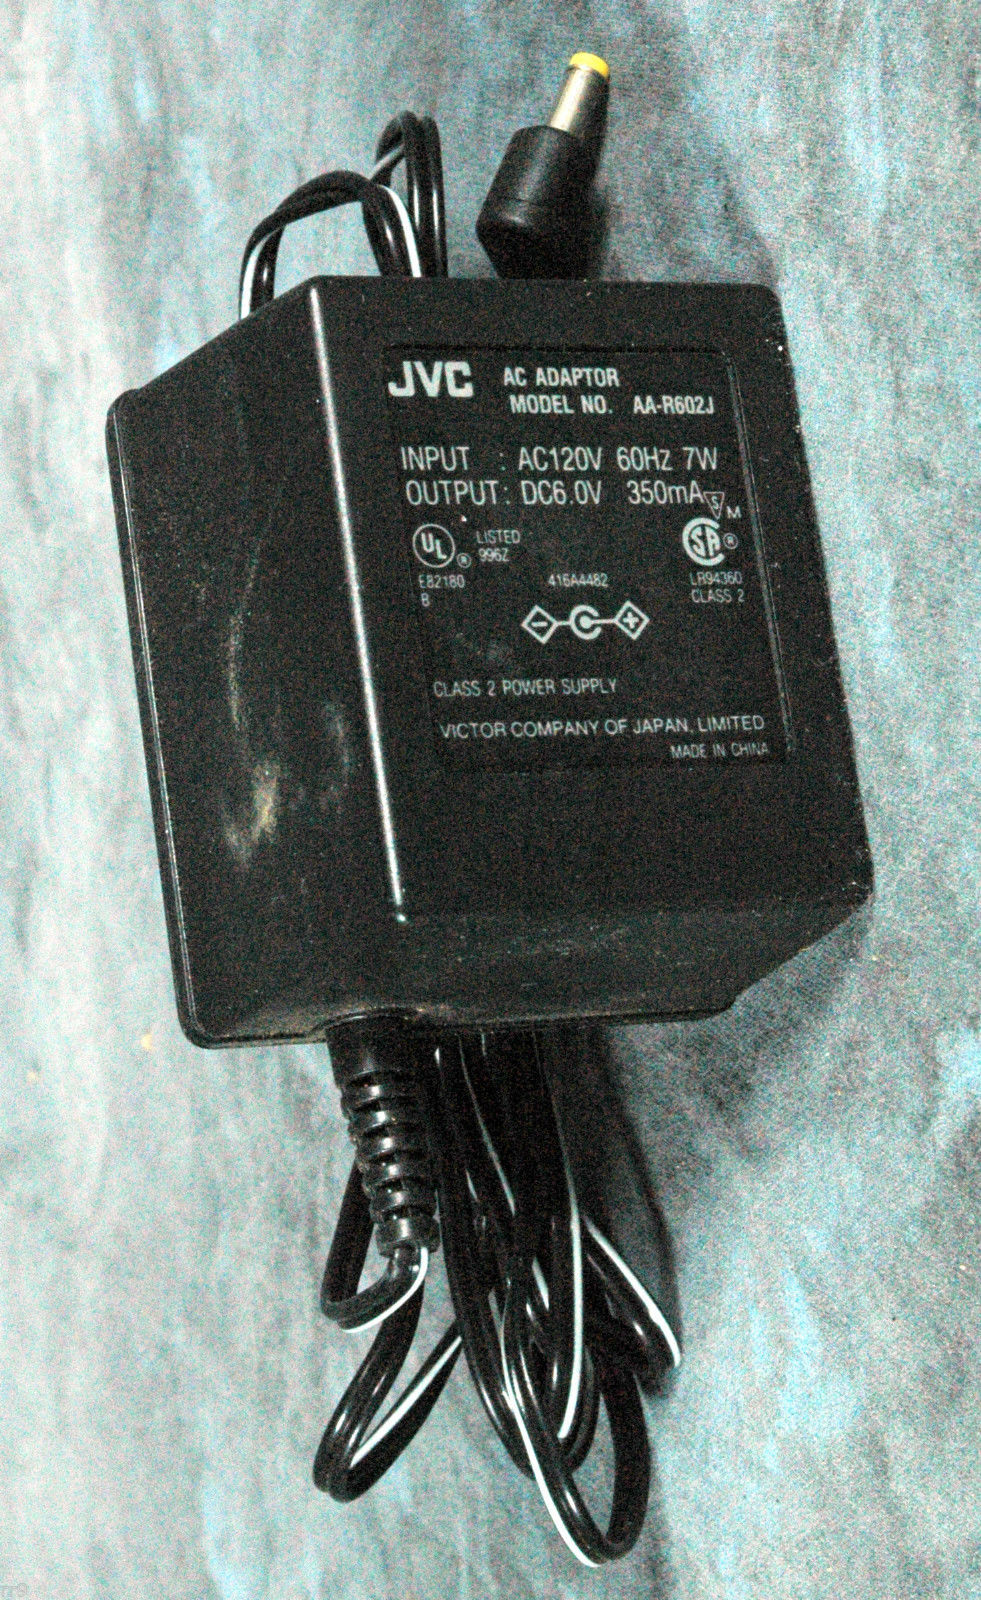 Primary image for JVC AC Adaptor Model No. AA-R602J 6.0V 350mA